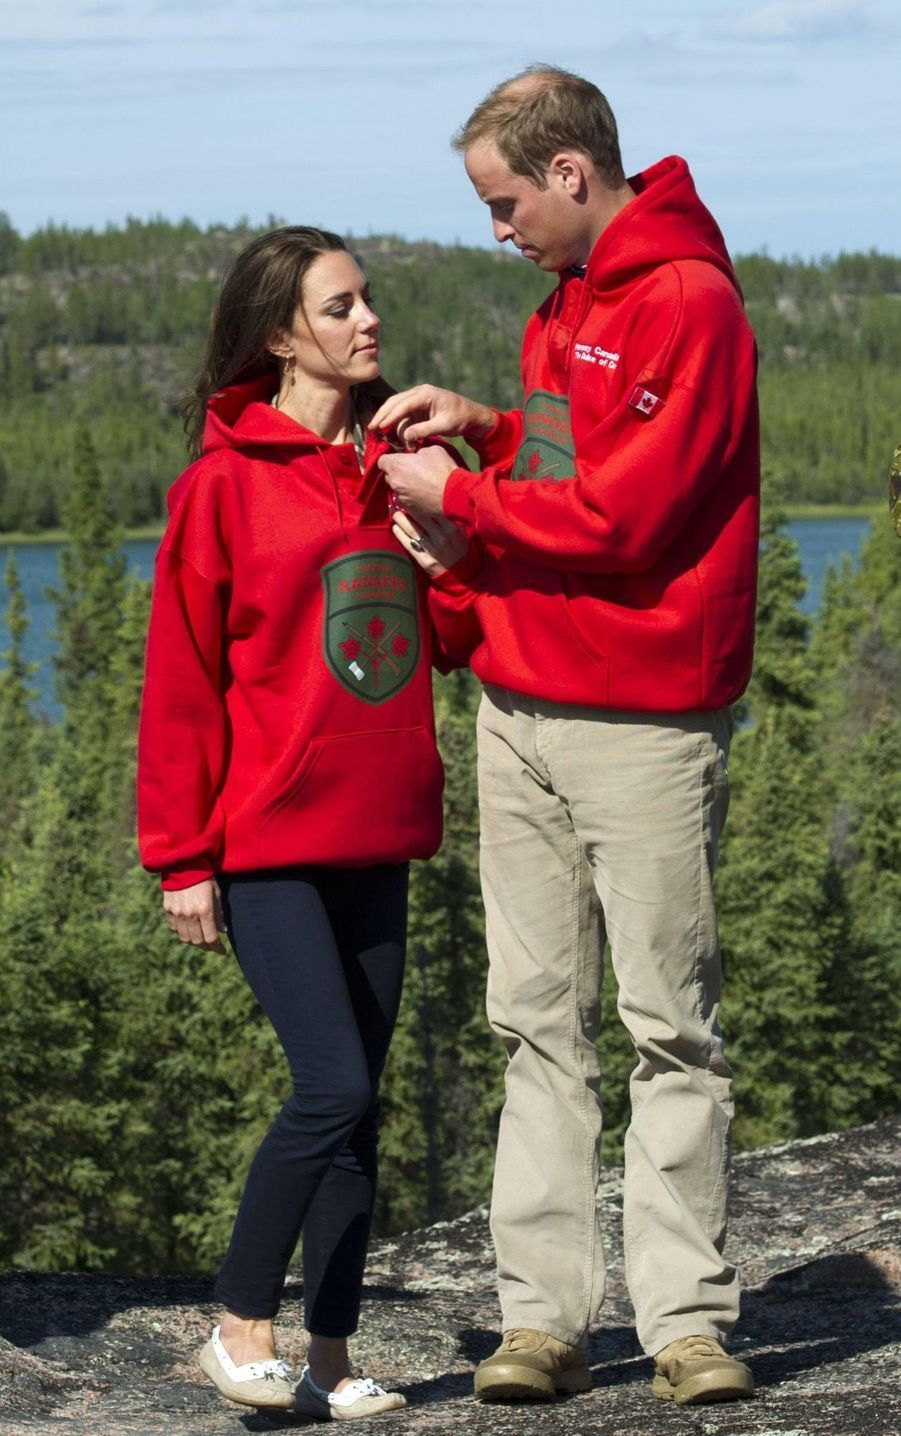 William aide Kate à enfiler son nouveau pull des Canadian Rangers, à Blatchford Lake au Canada, le 5 juillet 2011.